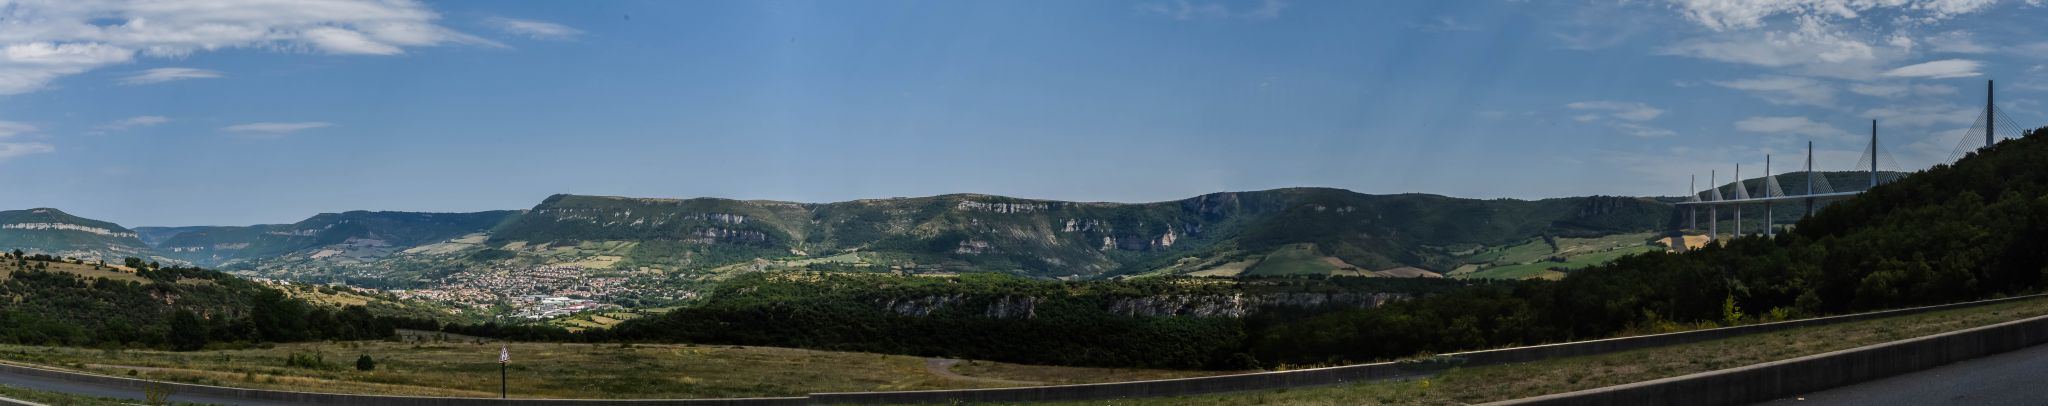 Vallée de Millau, France